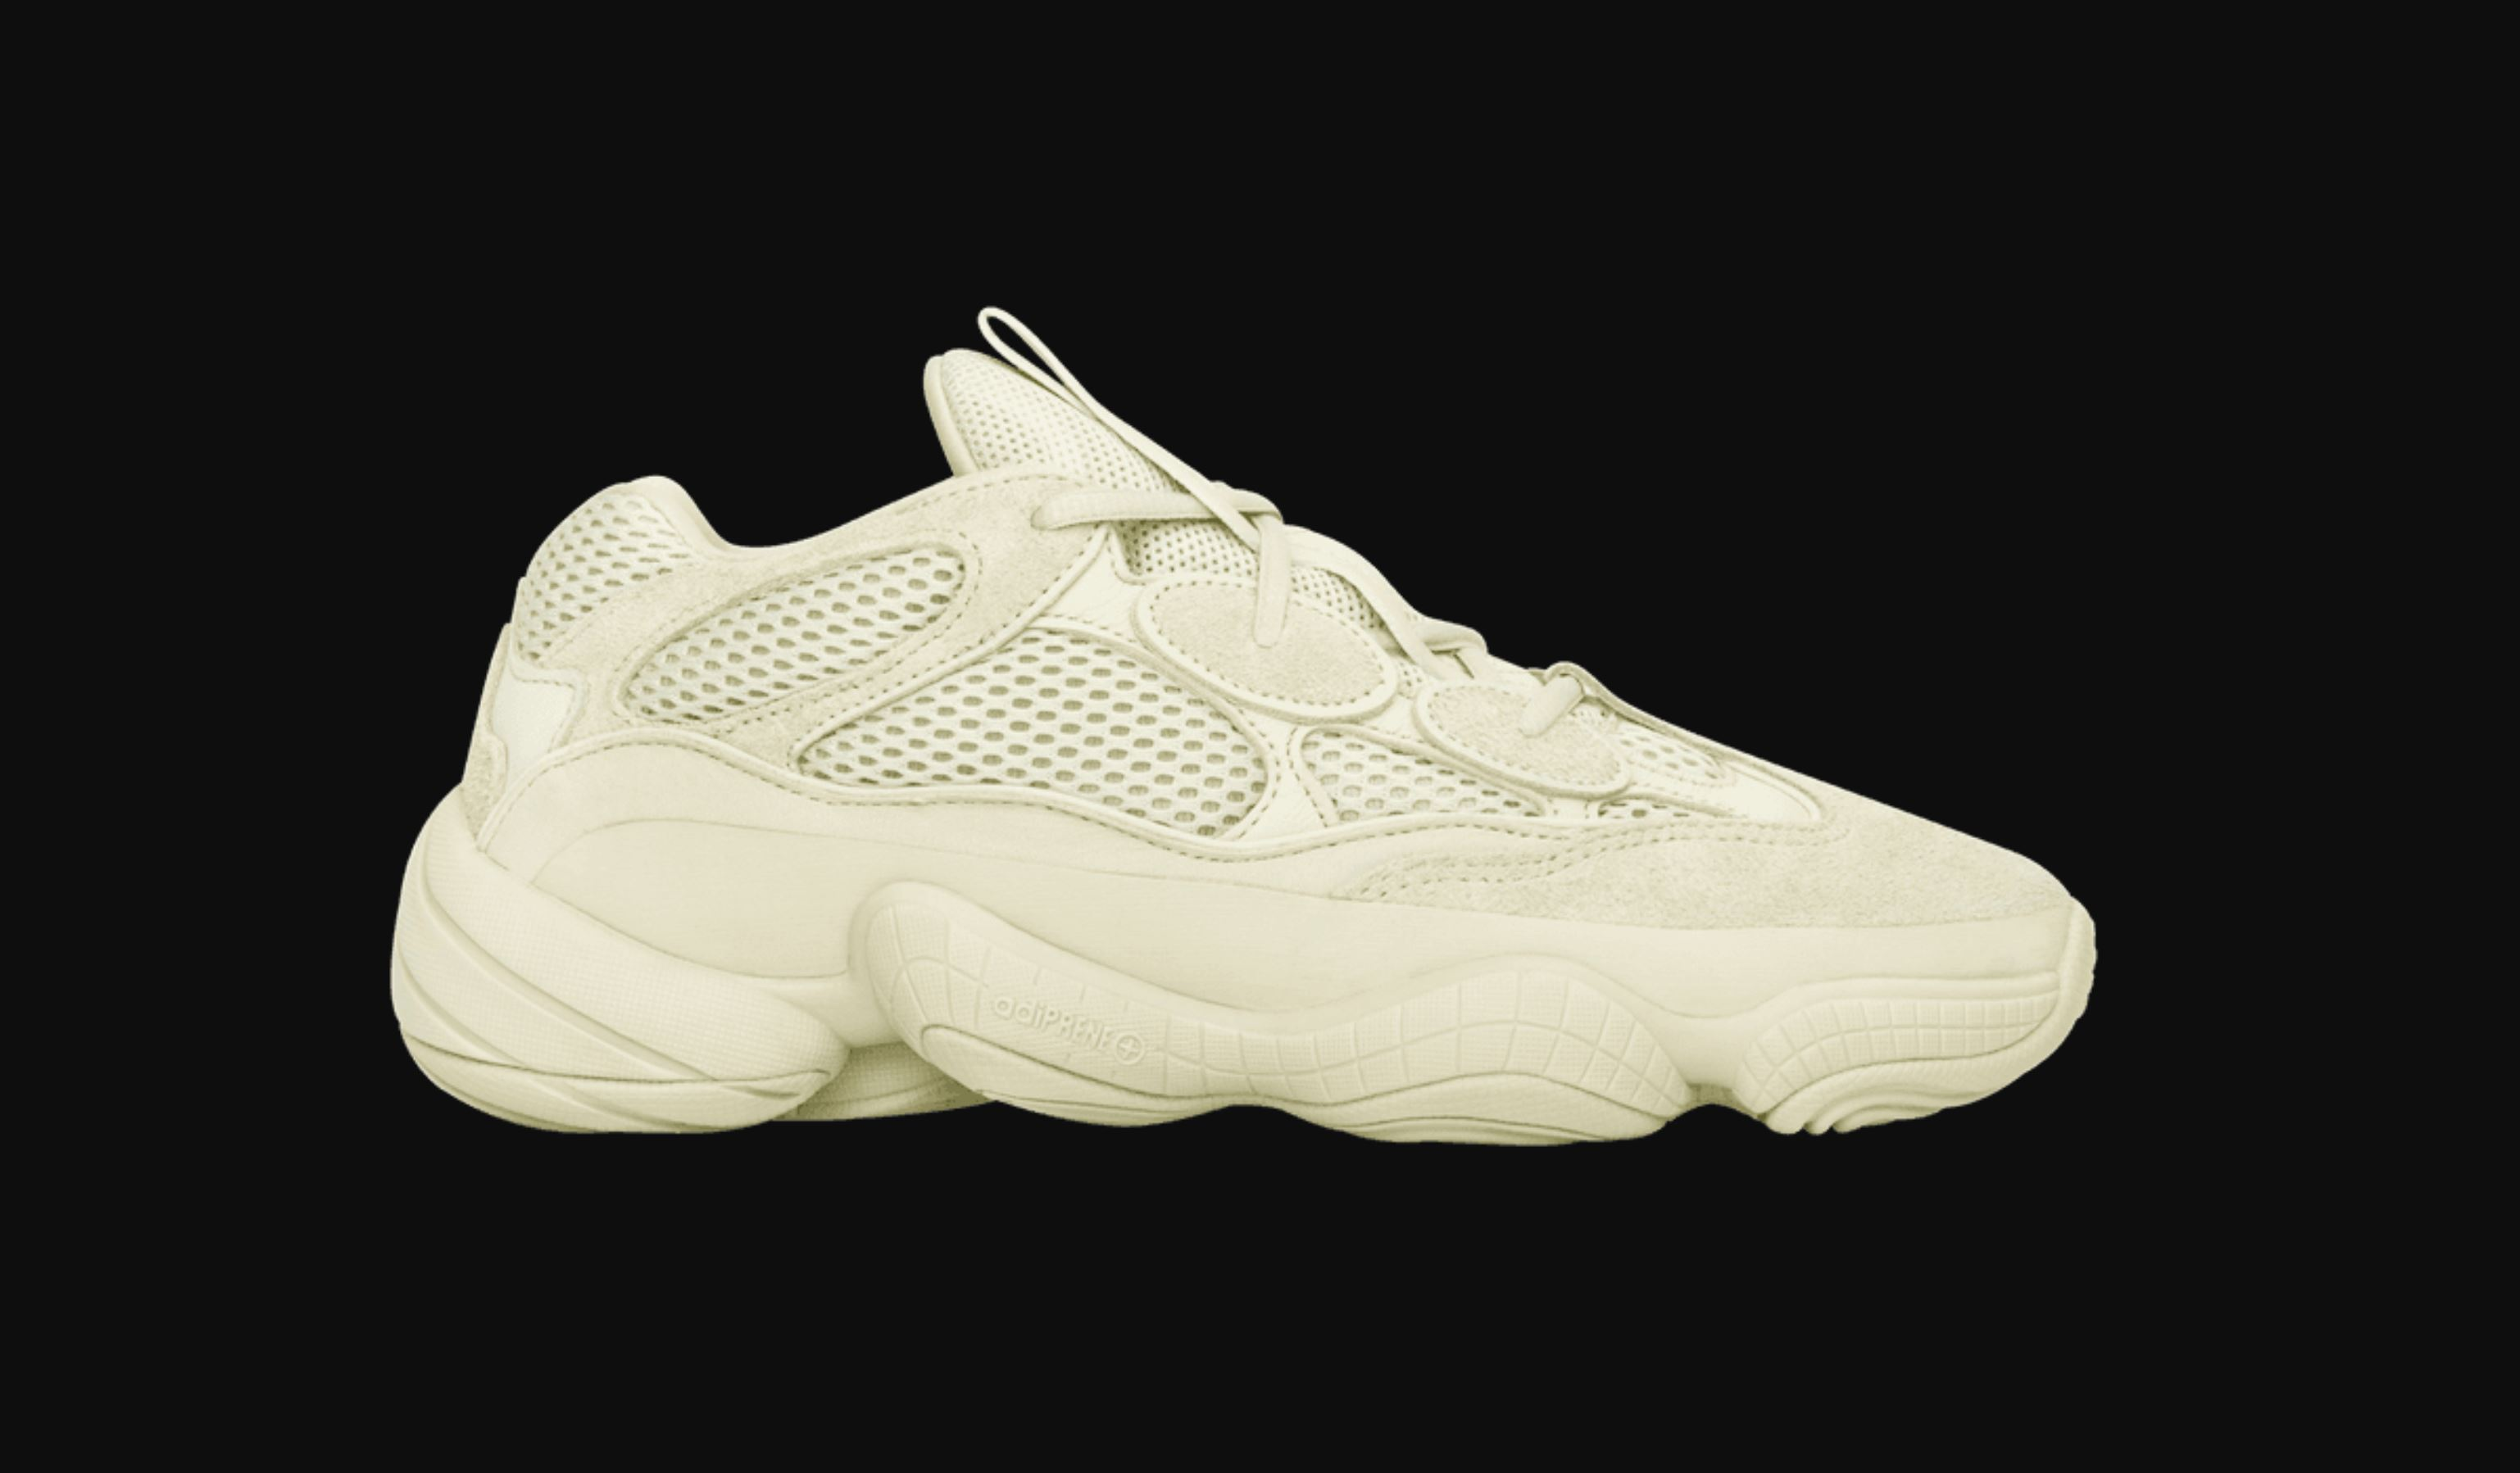 Adidas yeezy sply 350 2018 off White Running Shoes price in